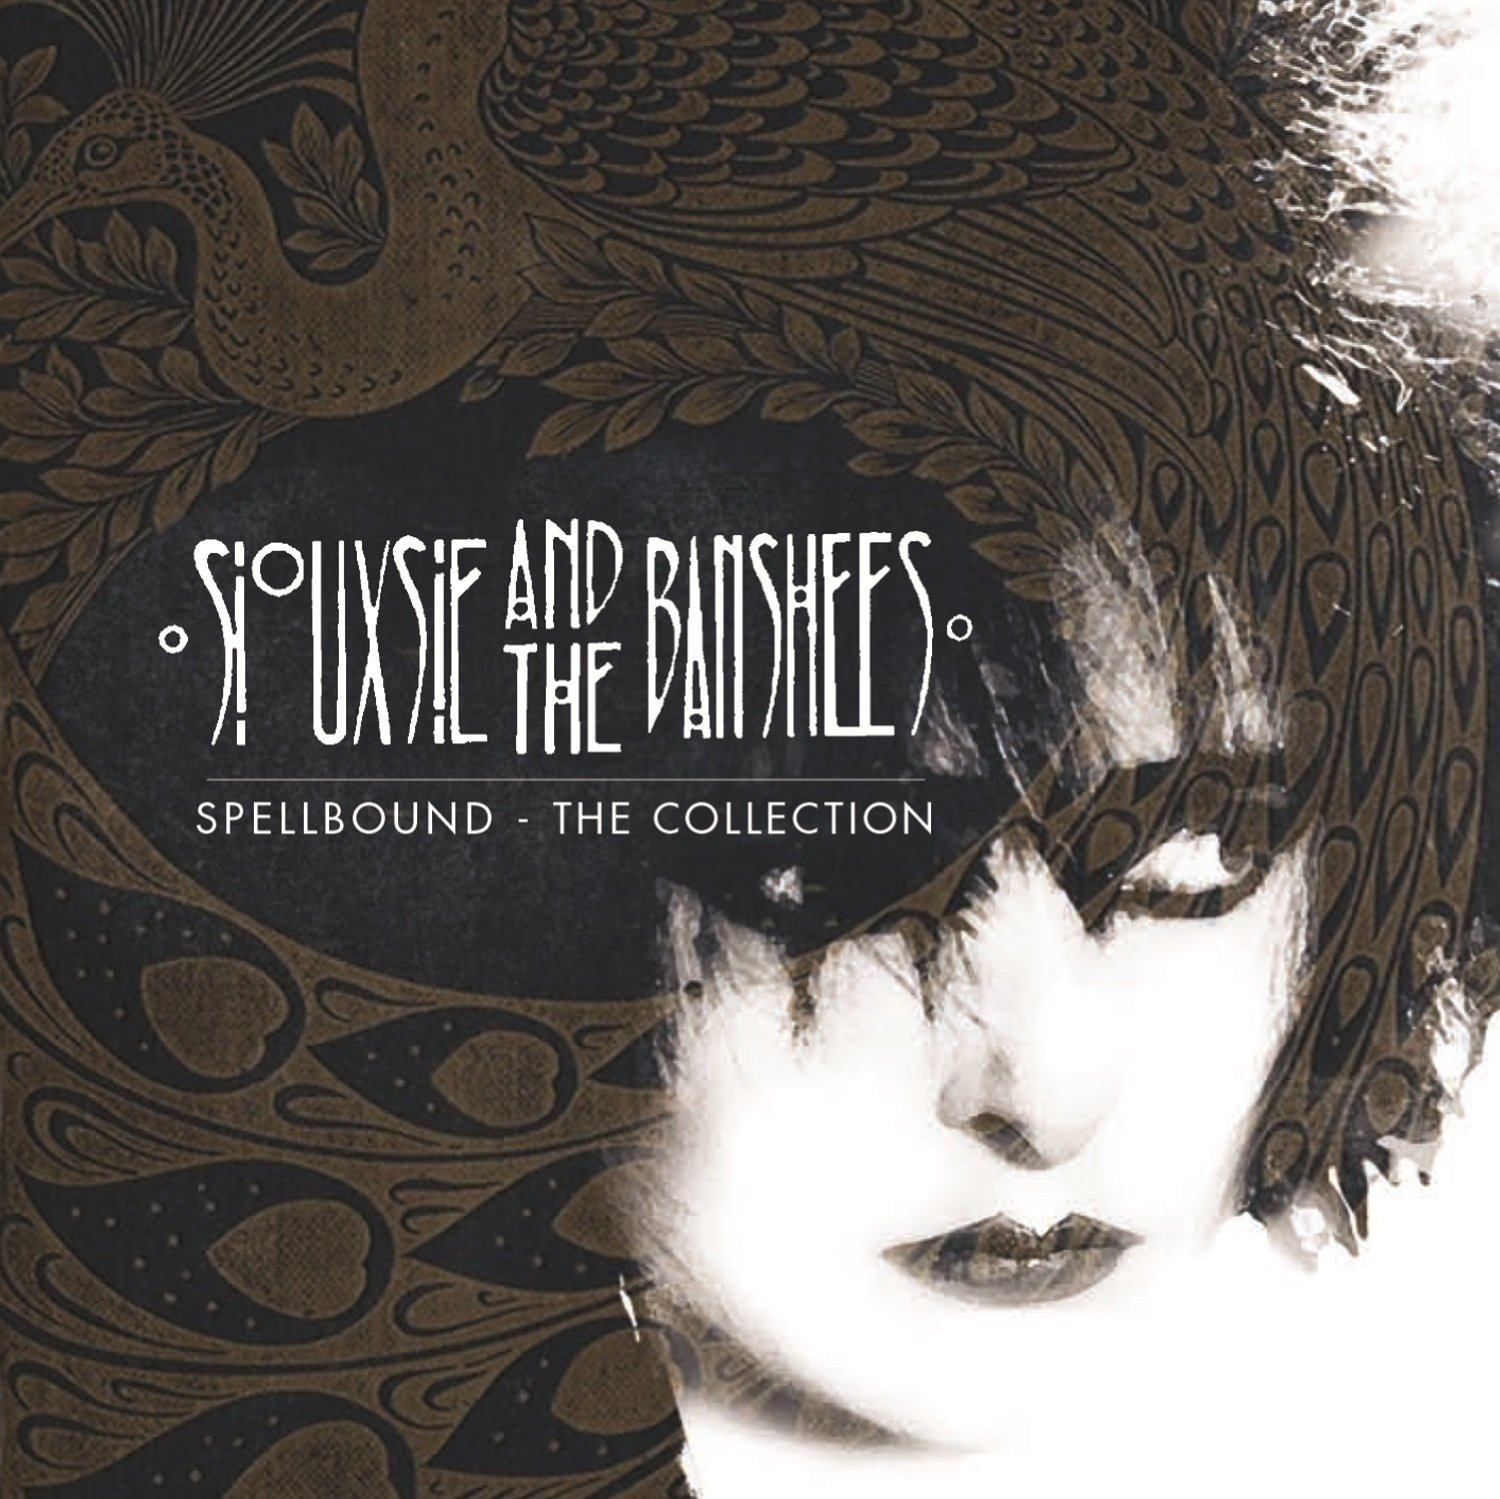 Siouxsie And The Banshees Spellbound Cd Discobole Gr